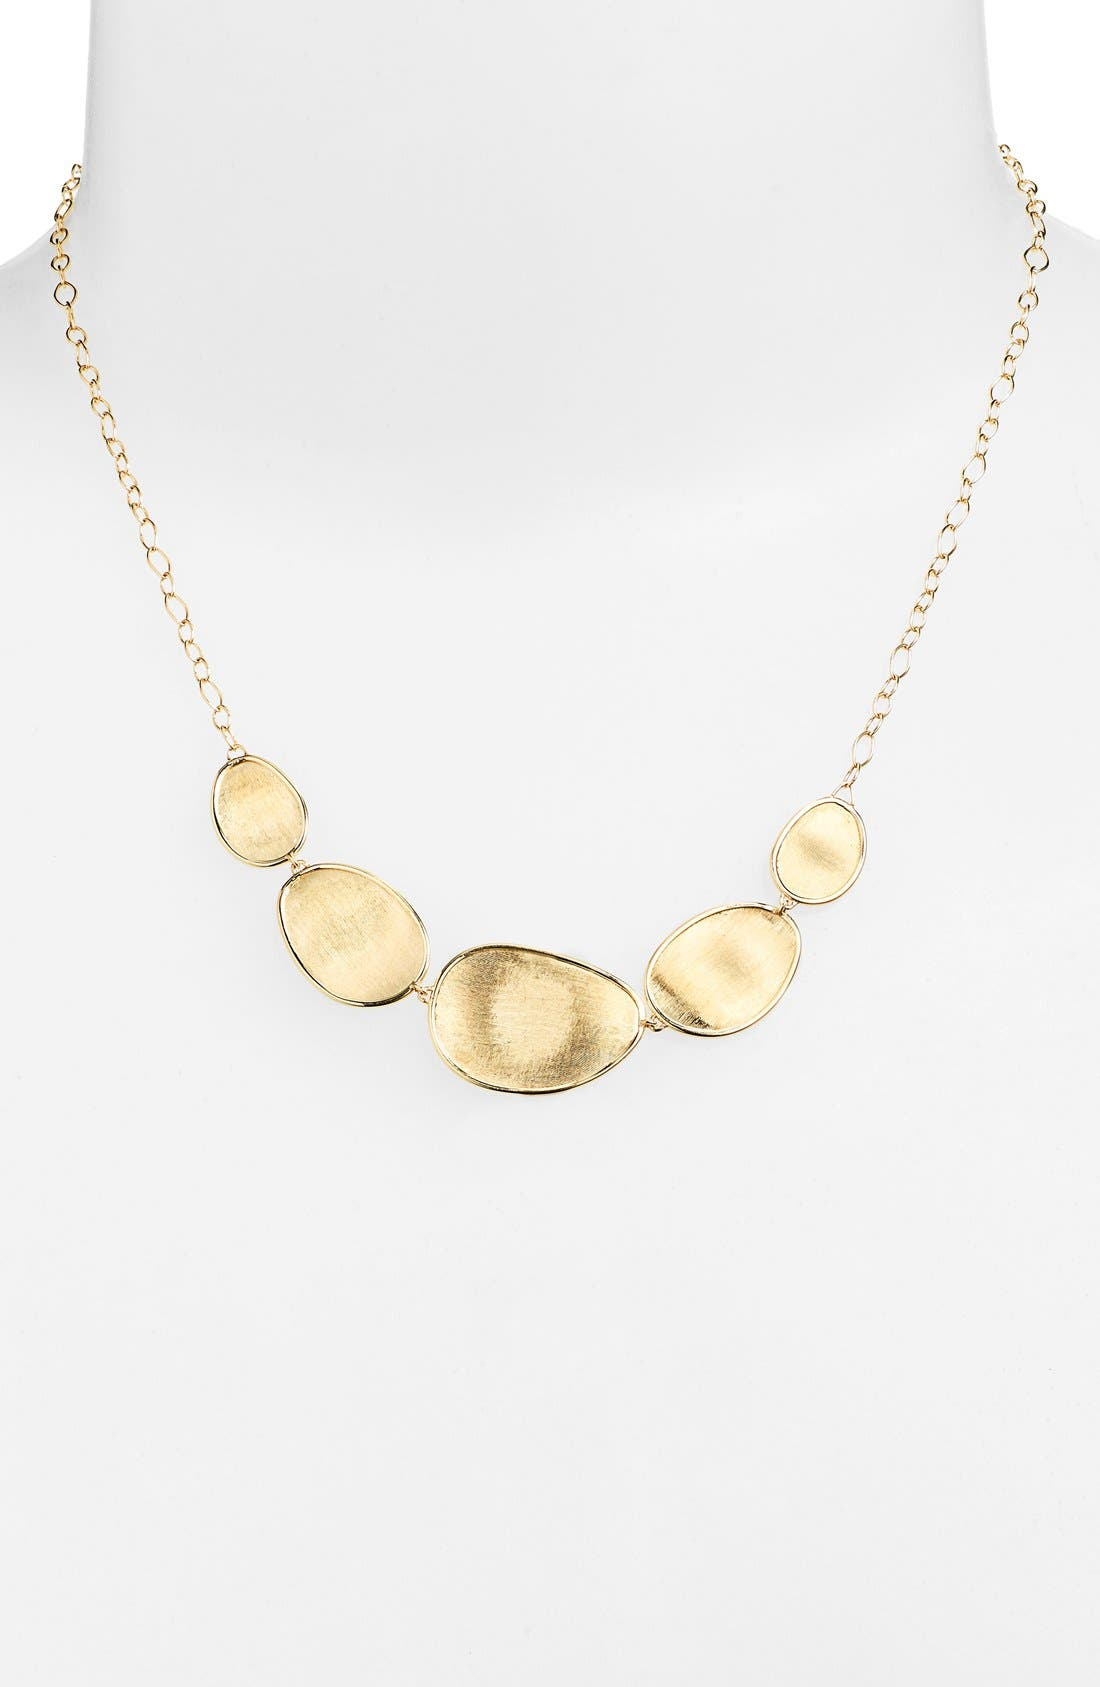 MARCO BICEGO Lunaria Frontal Necklace